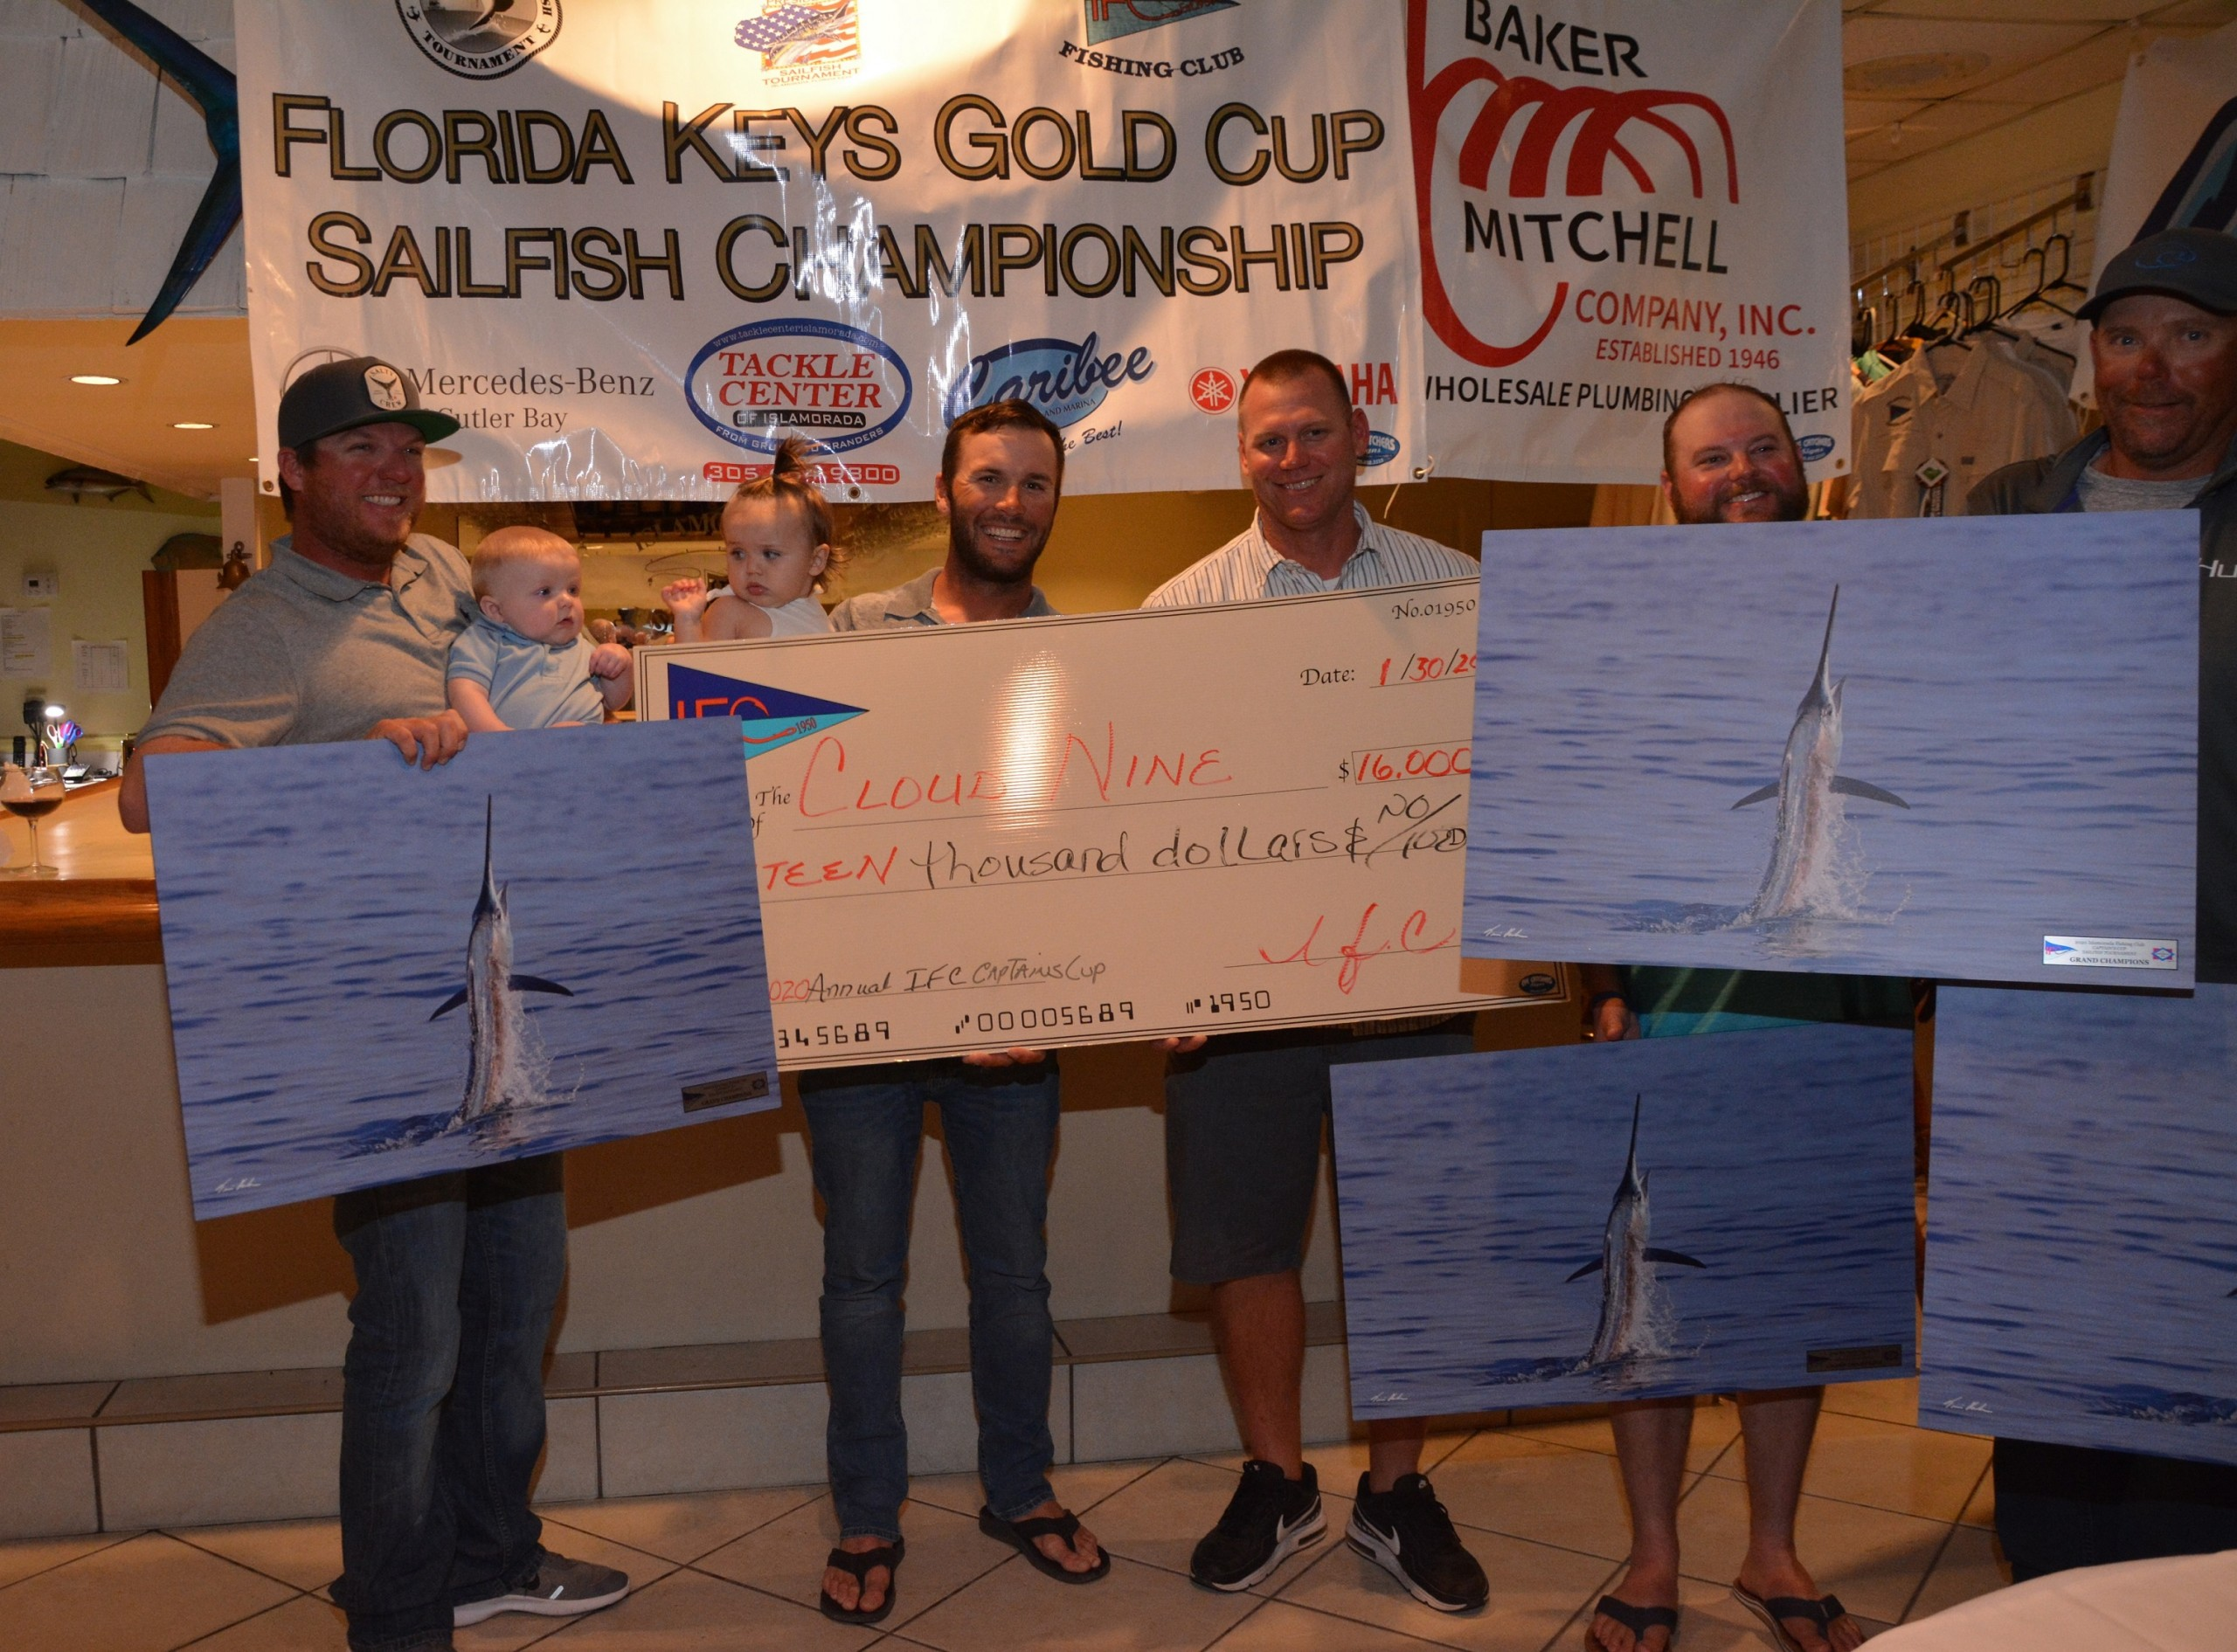 Captain Greg Eklund and Cloud Nine team take first at IFC Captain's Cup Sailfish Tournament